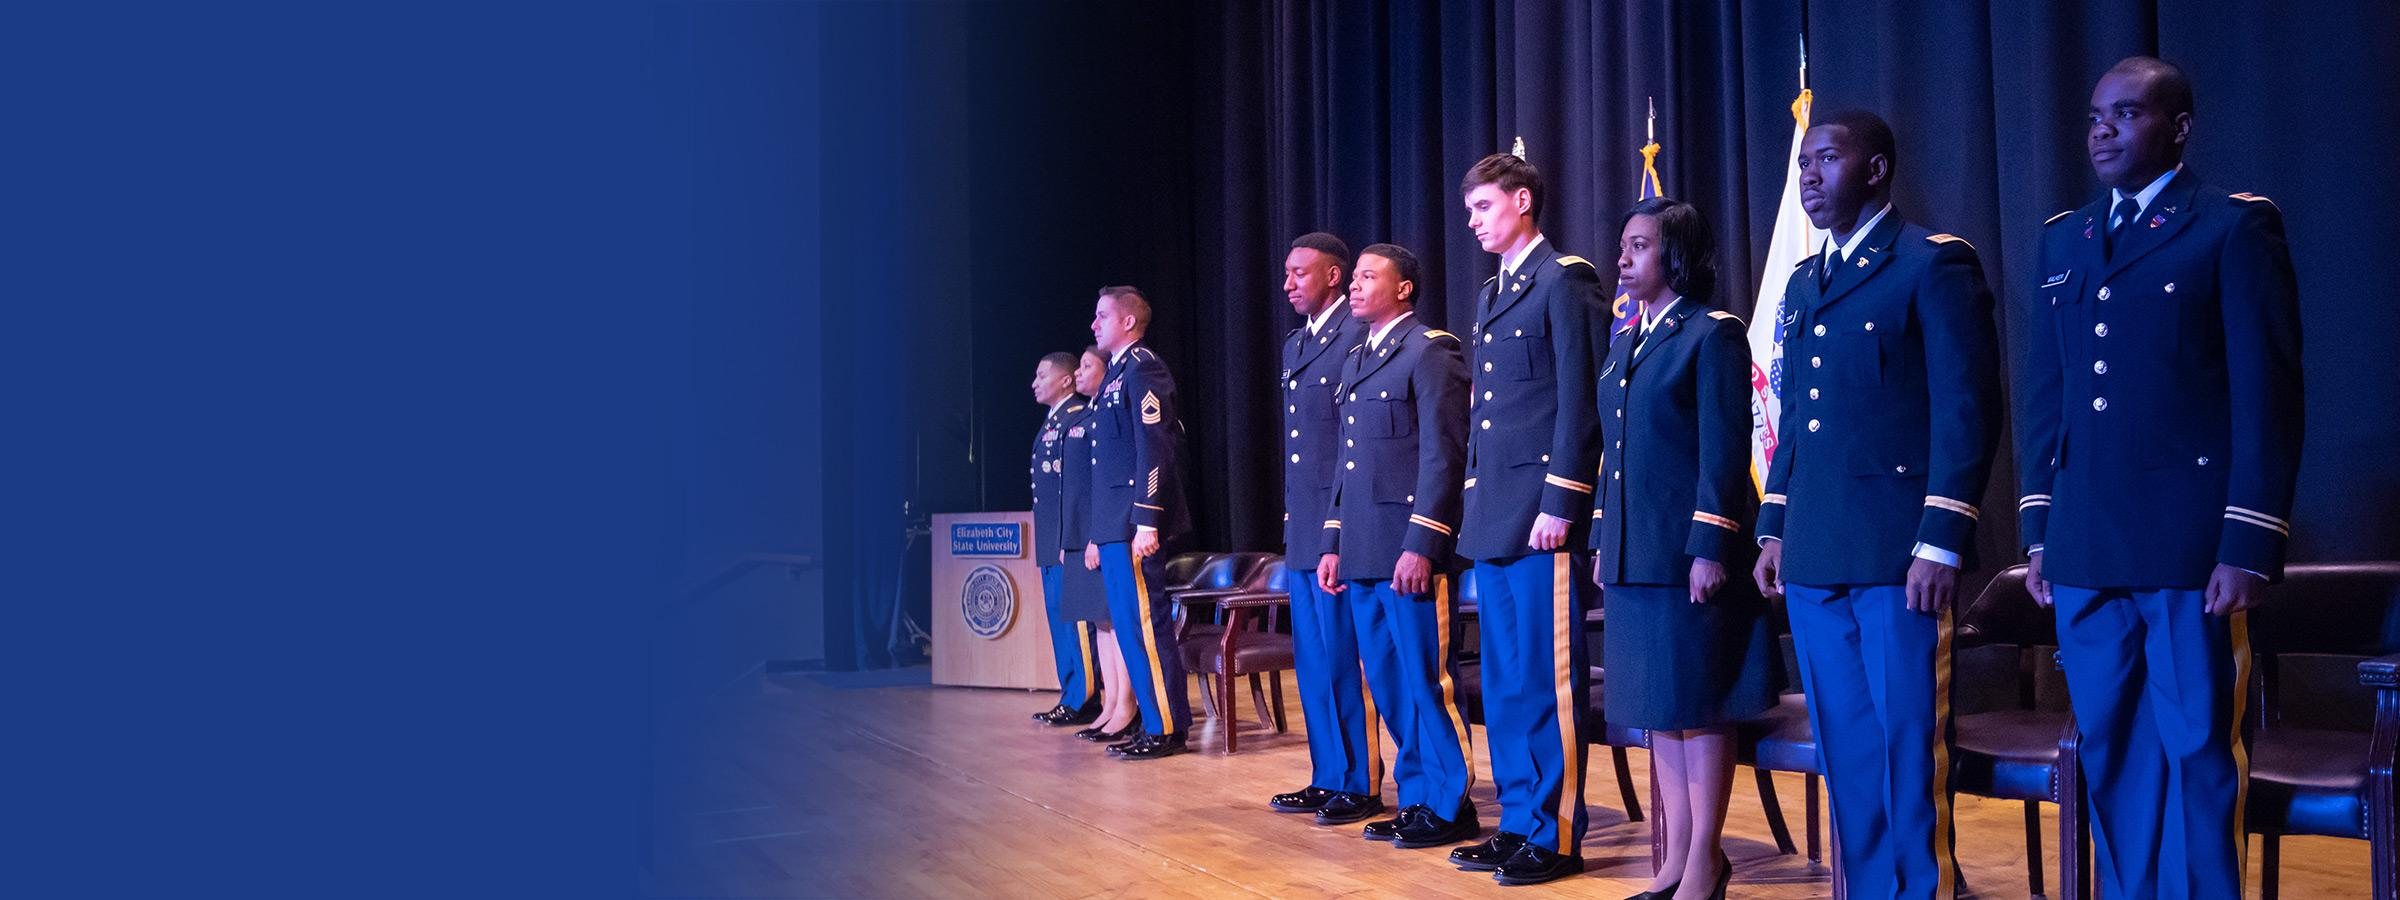 Six New Army Officers